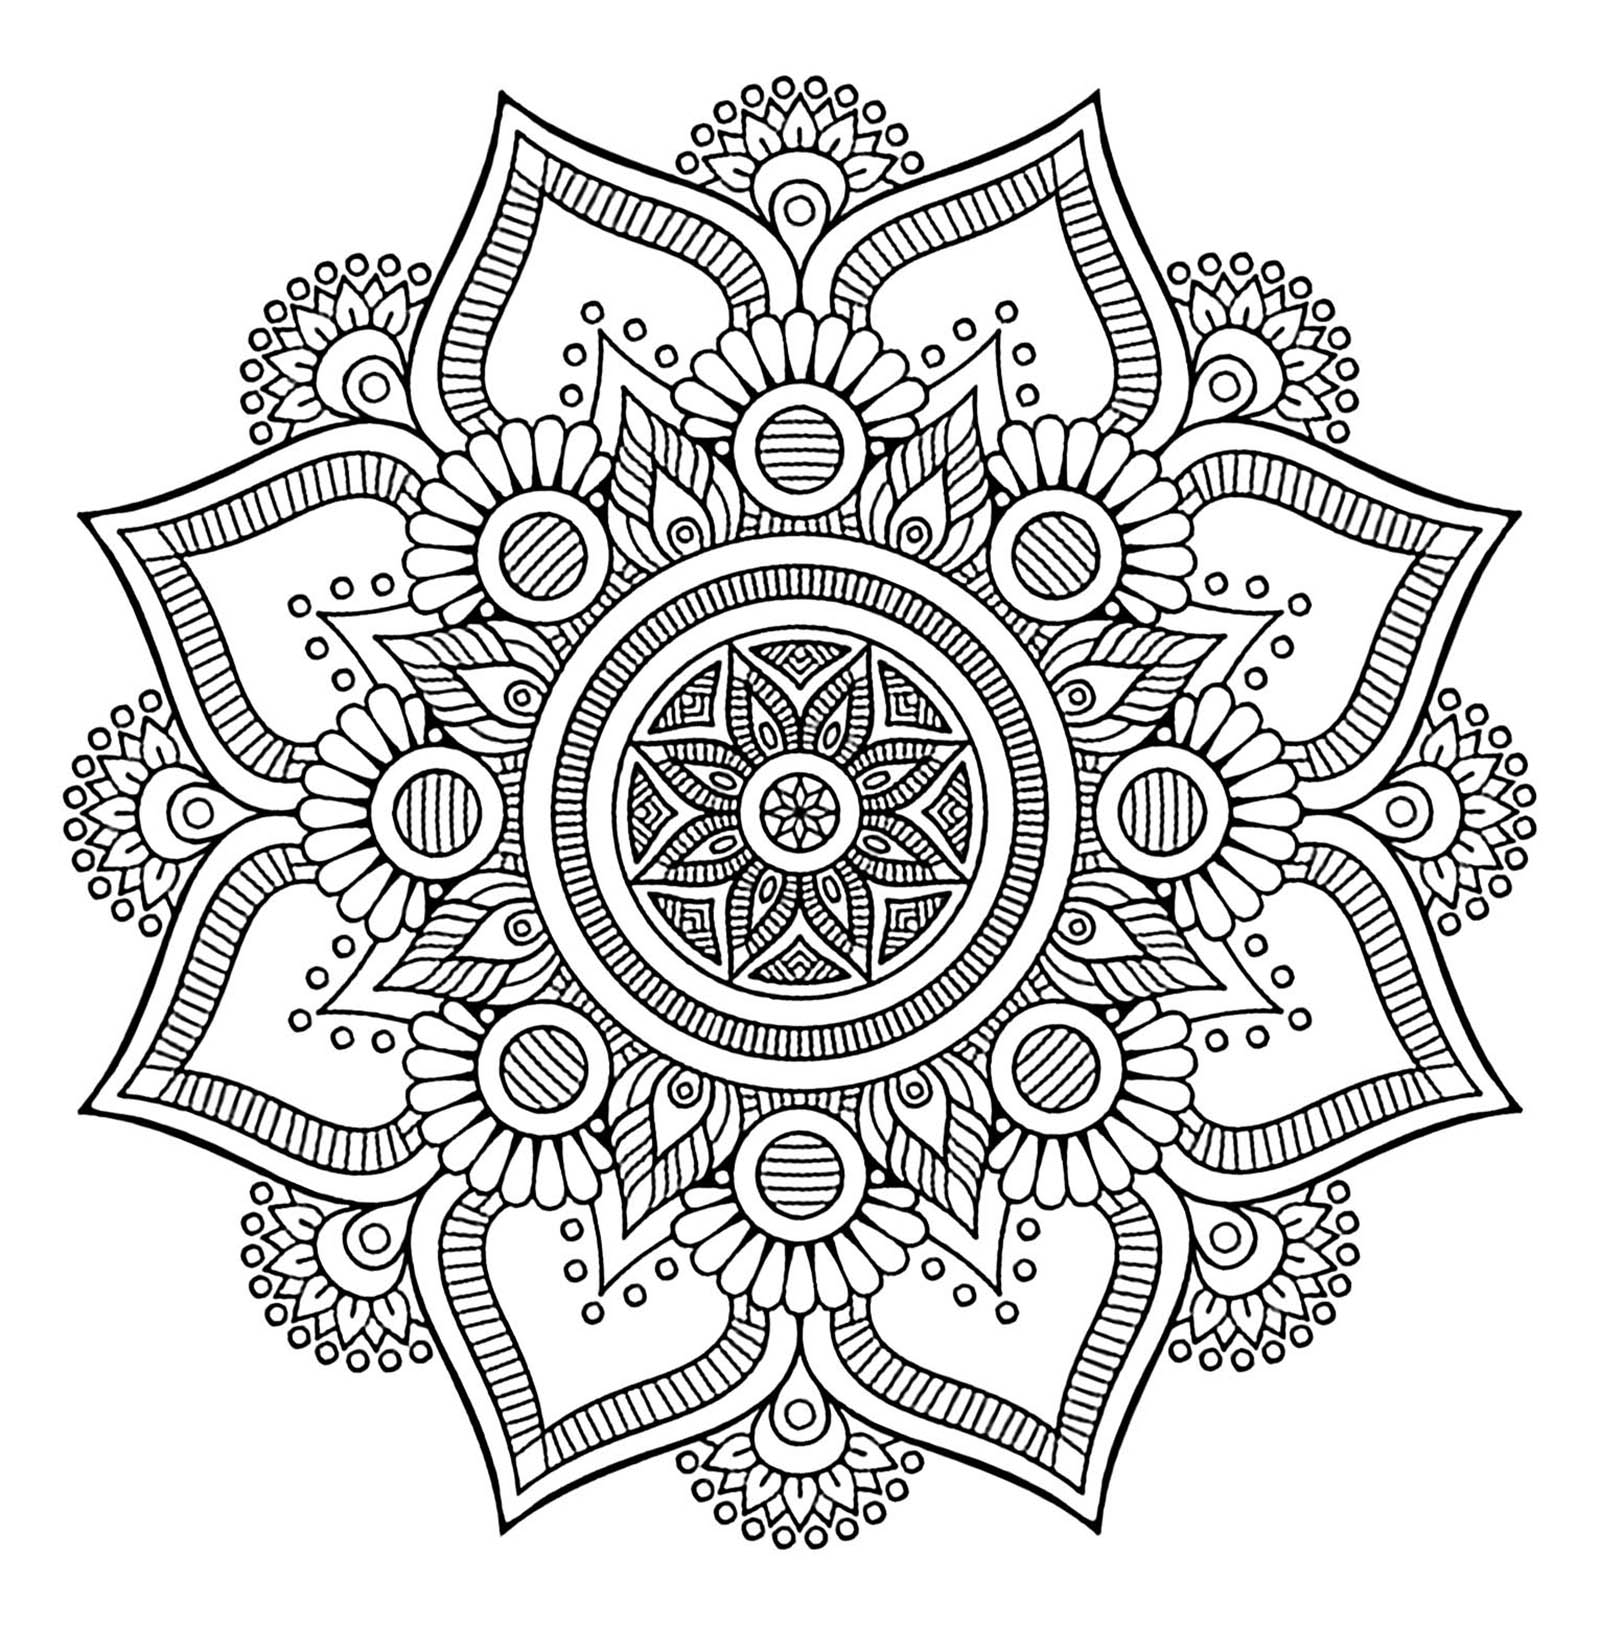 mandalas to color for adults mandalas to color for children mandalas kids coloring pages for to mandalas color adults